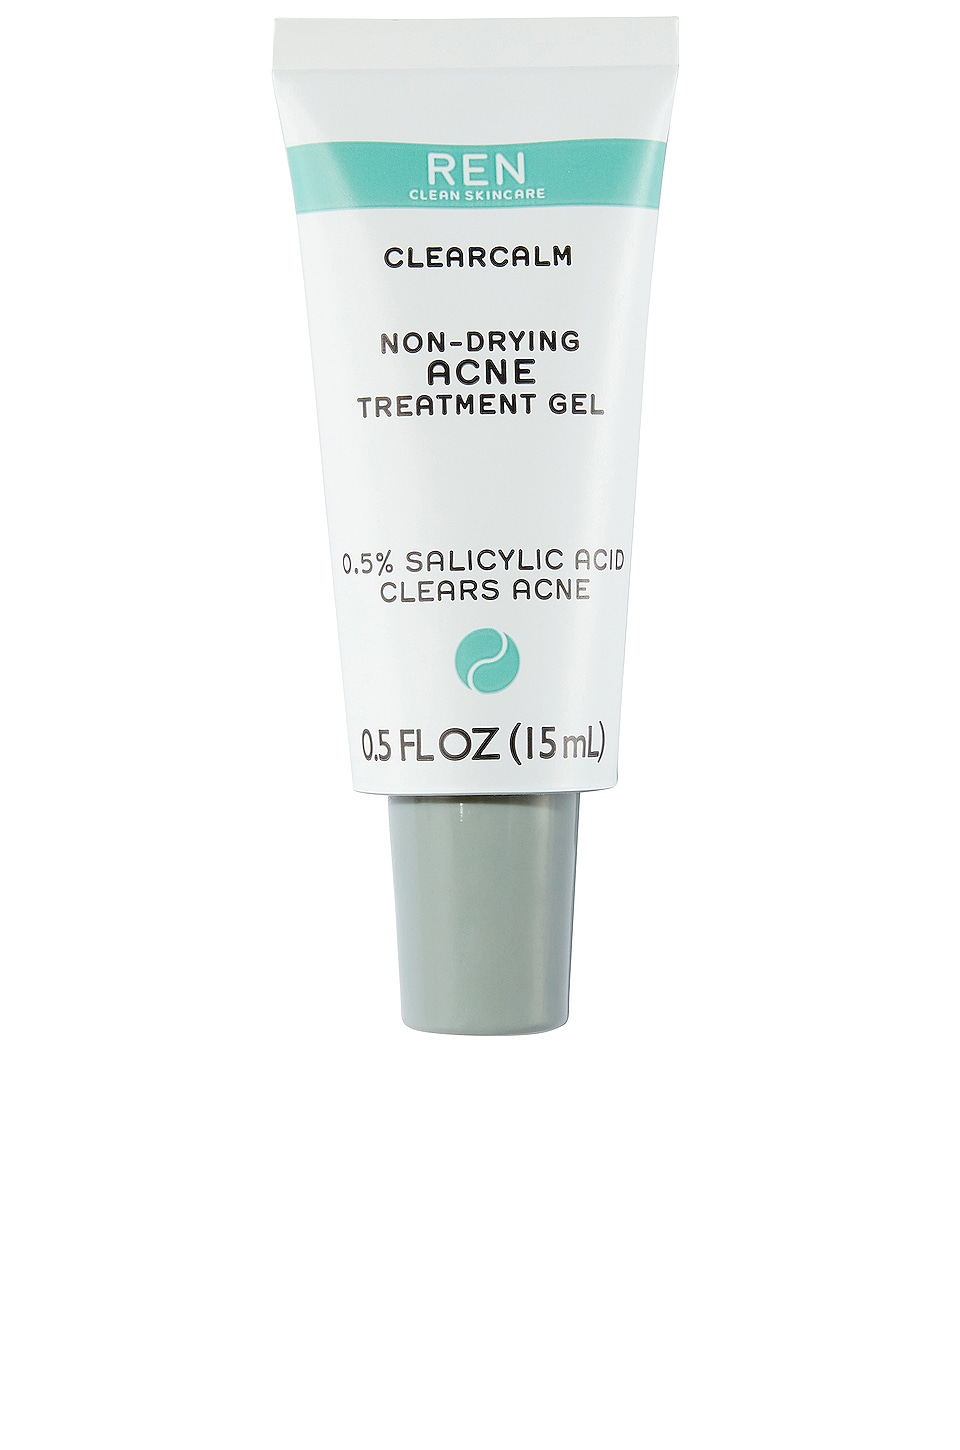 REN Clean Skincare ClearCalm Non-Drying Acne Treatment